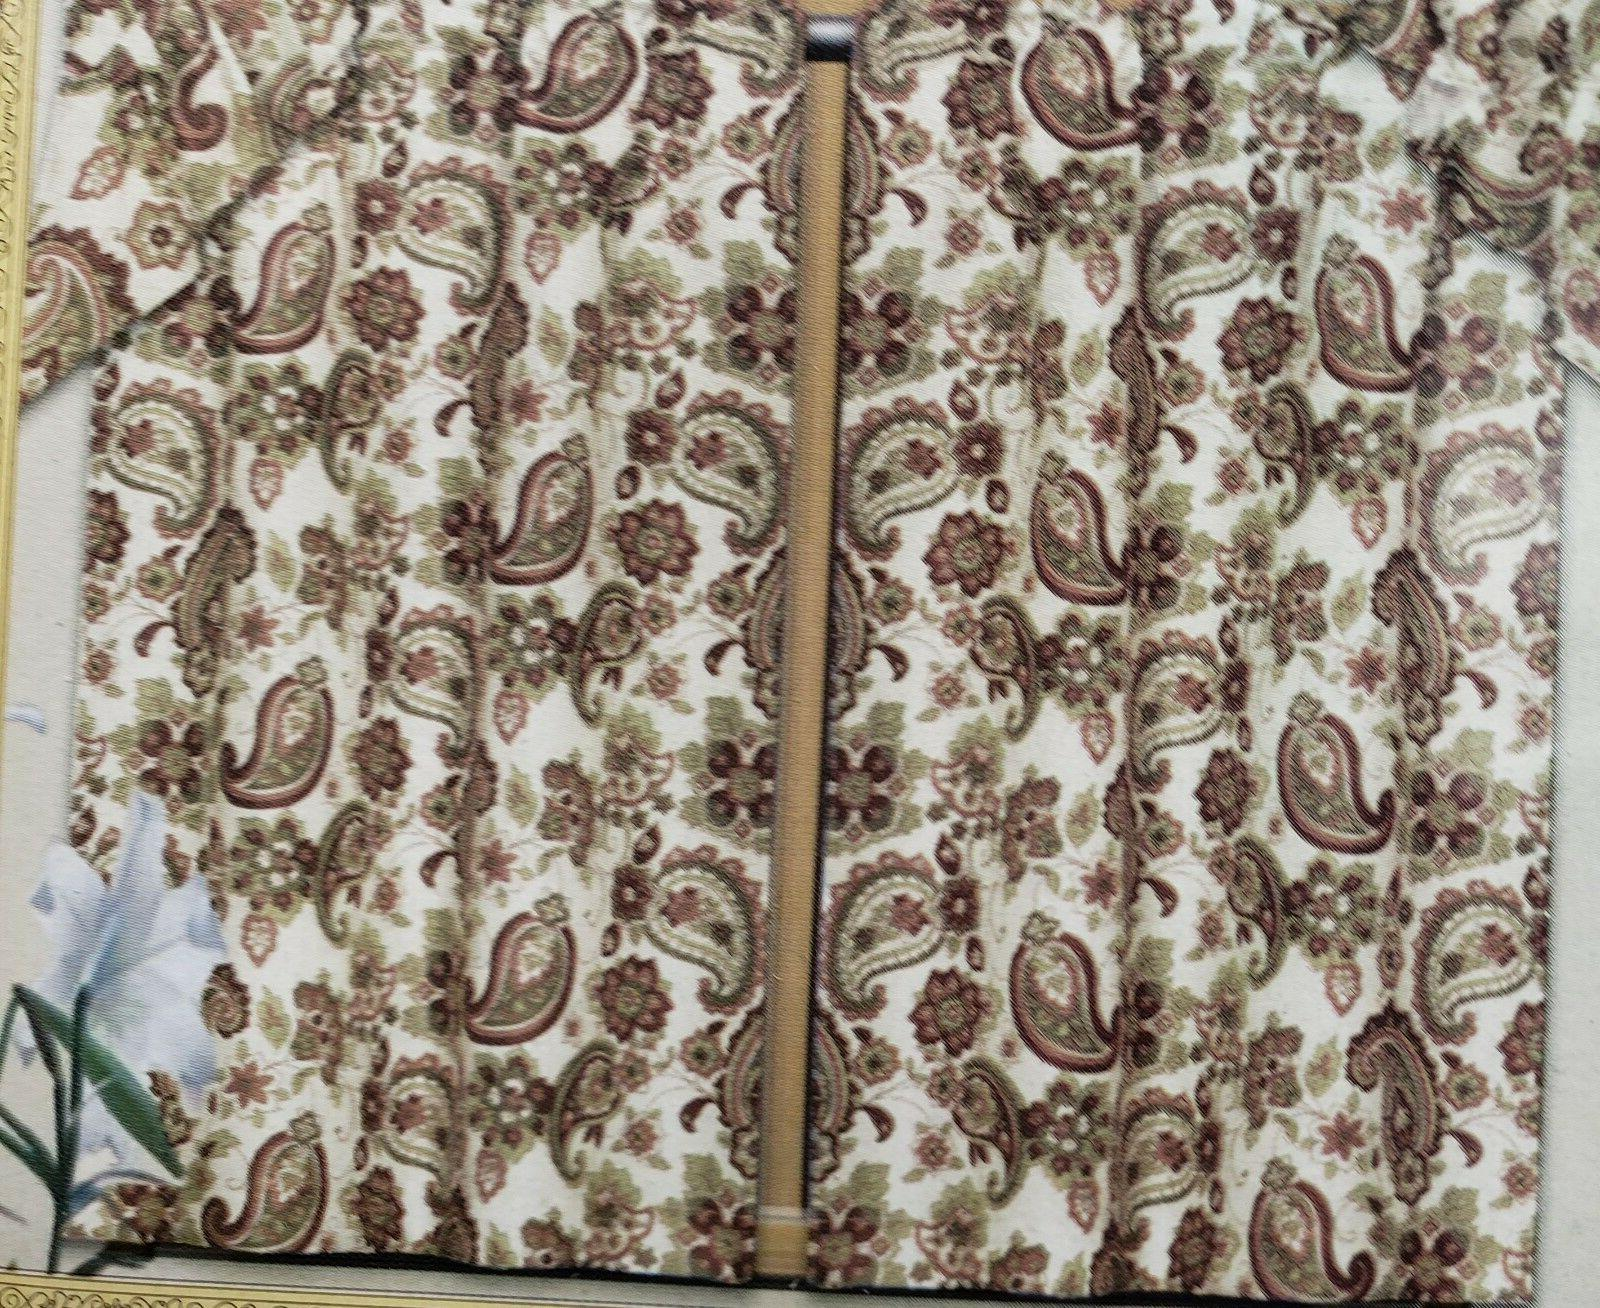 3 Kitchen Curtains SET: 2 Swag FLOWERS PAISLEY,BH